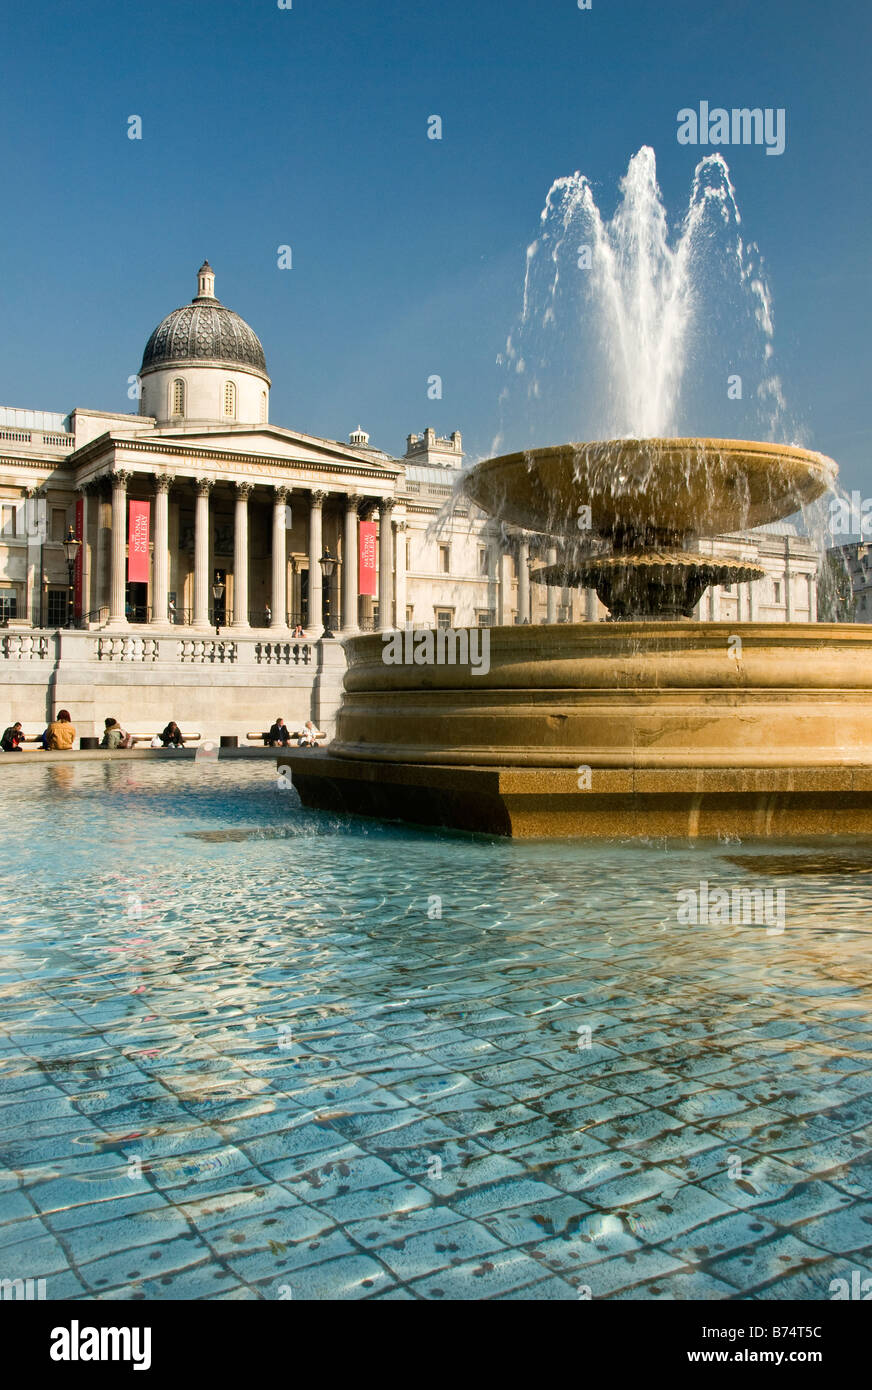 View across the Trafalgar square to the National Gallery, London, UK Stock Photo